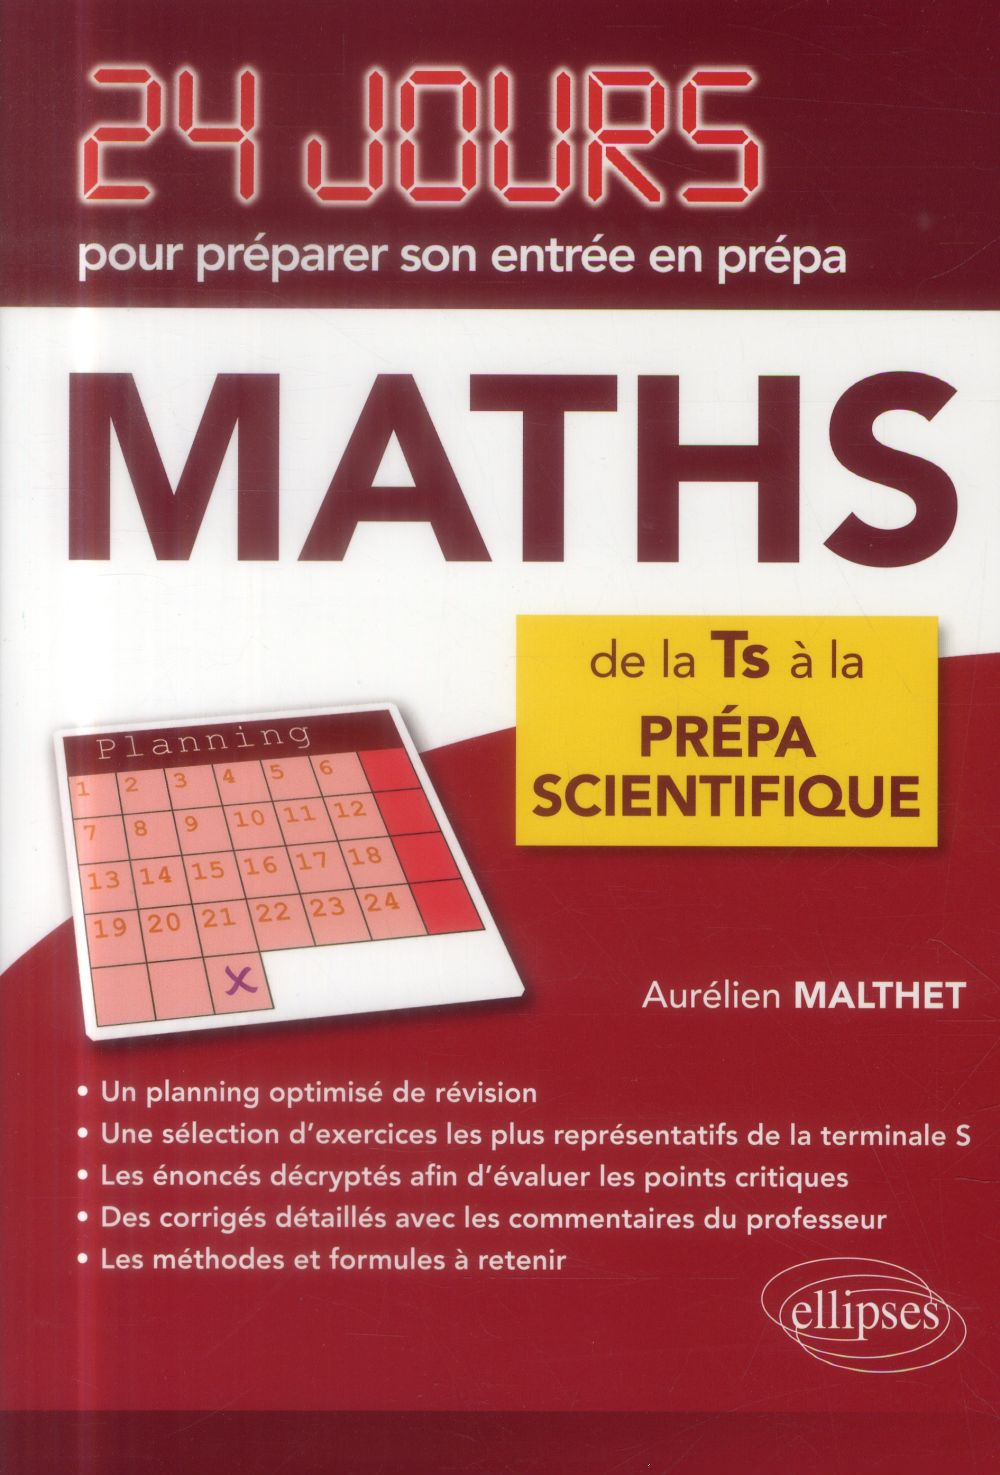 MATHS DE LA TS A LA PREPA SCIENTIFIQUE